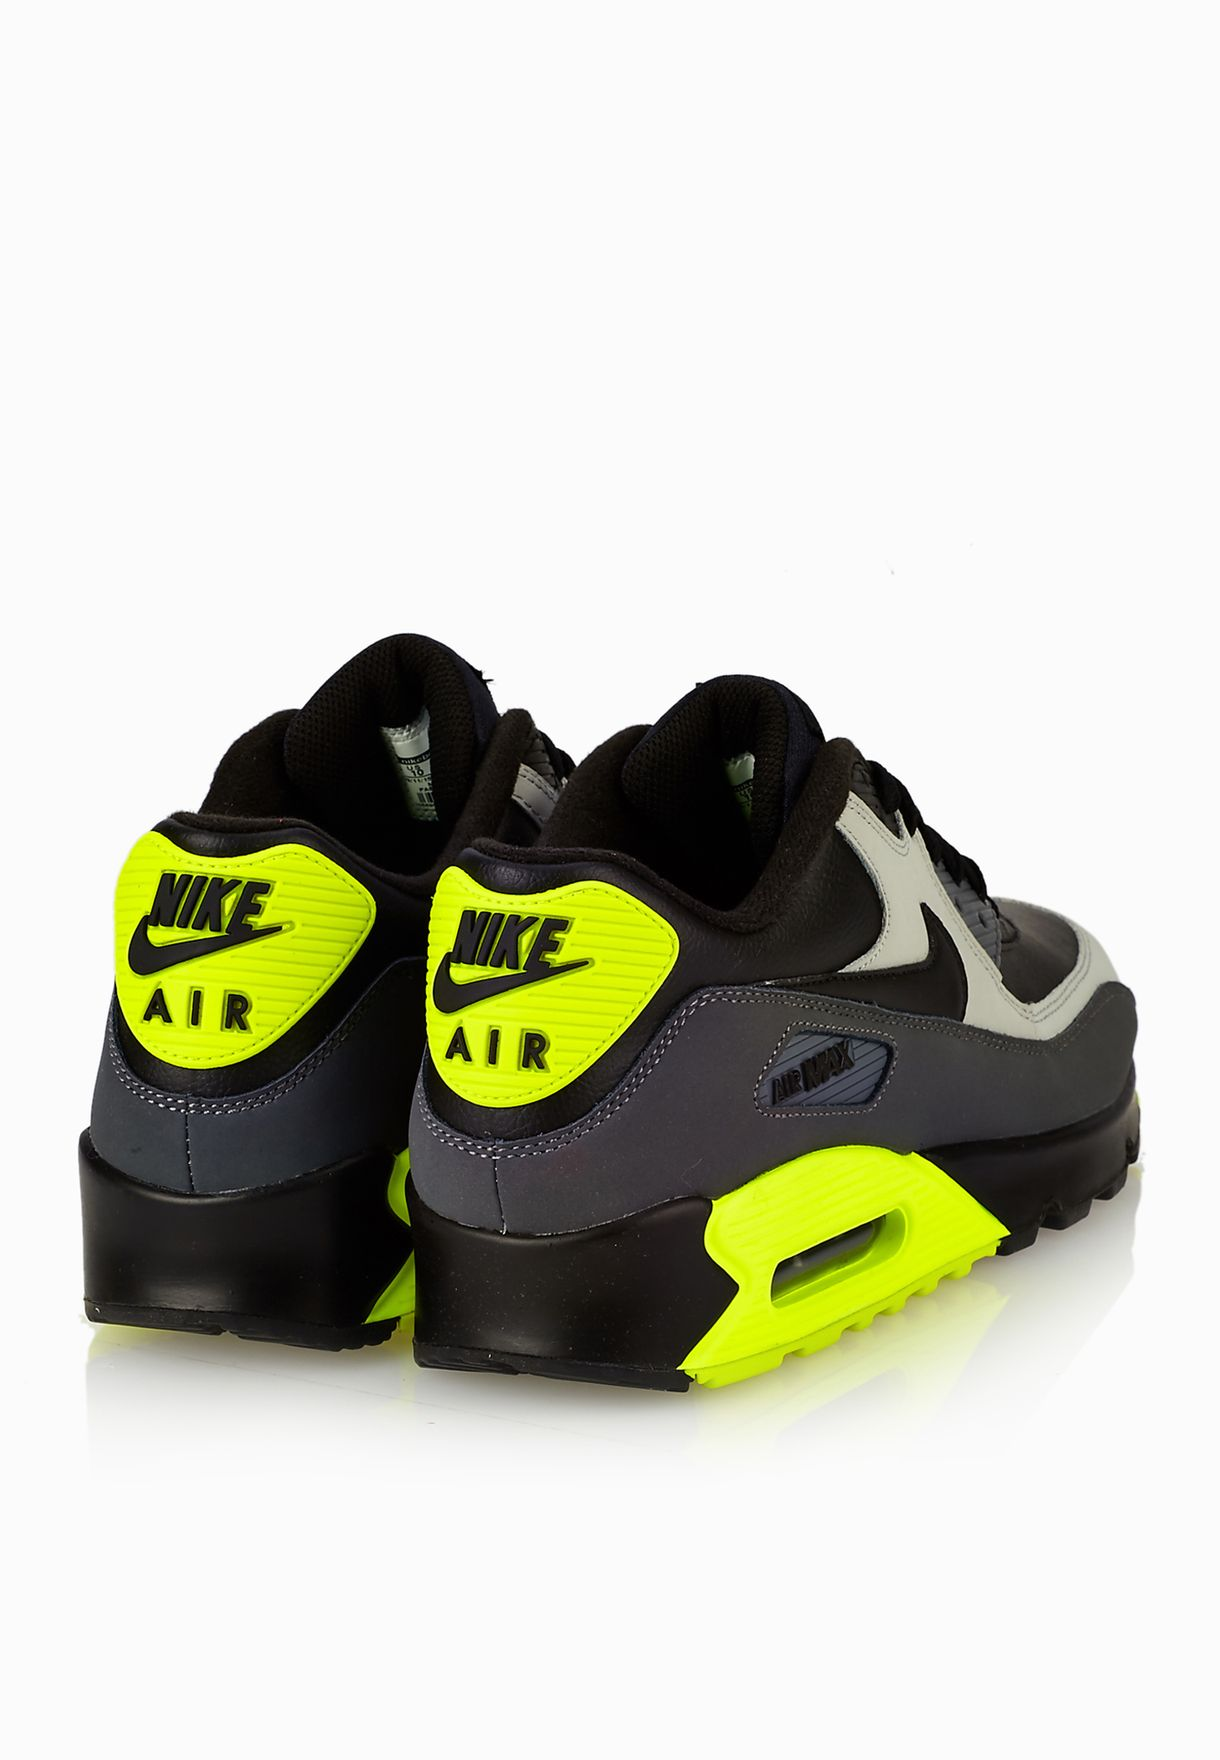 the best attitude bb548 1e7ab Shop Nike multicolor Air Max 90 LTR 652980-007 for Men in Kuwait ...